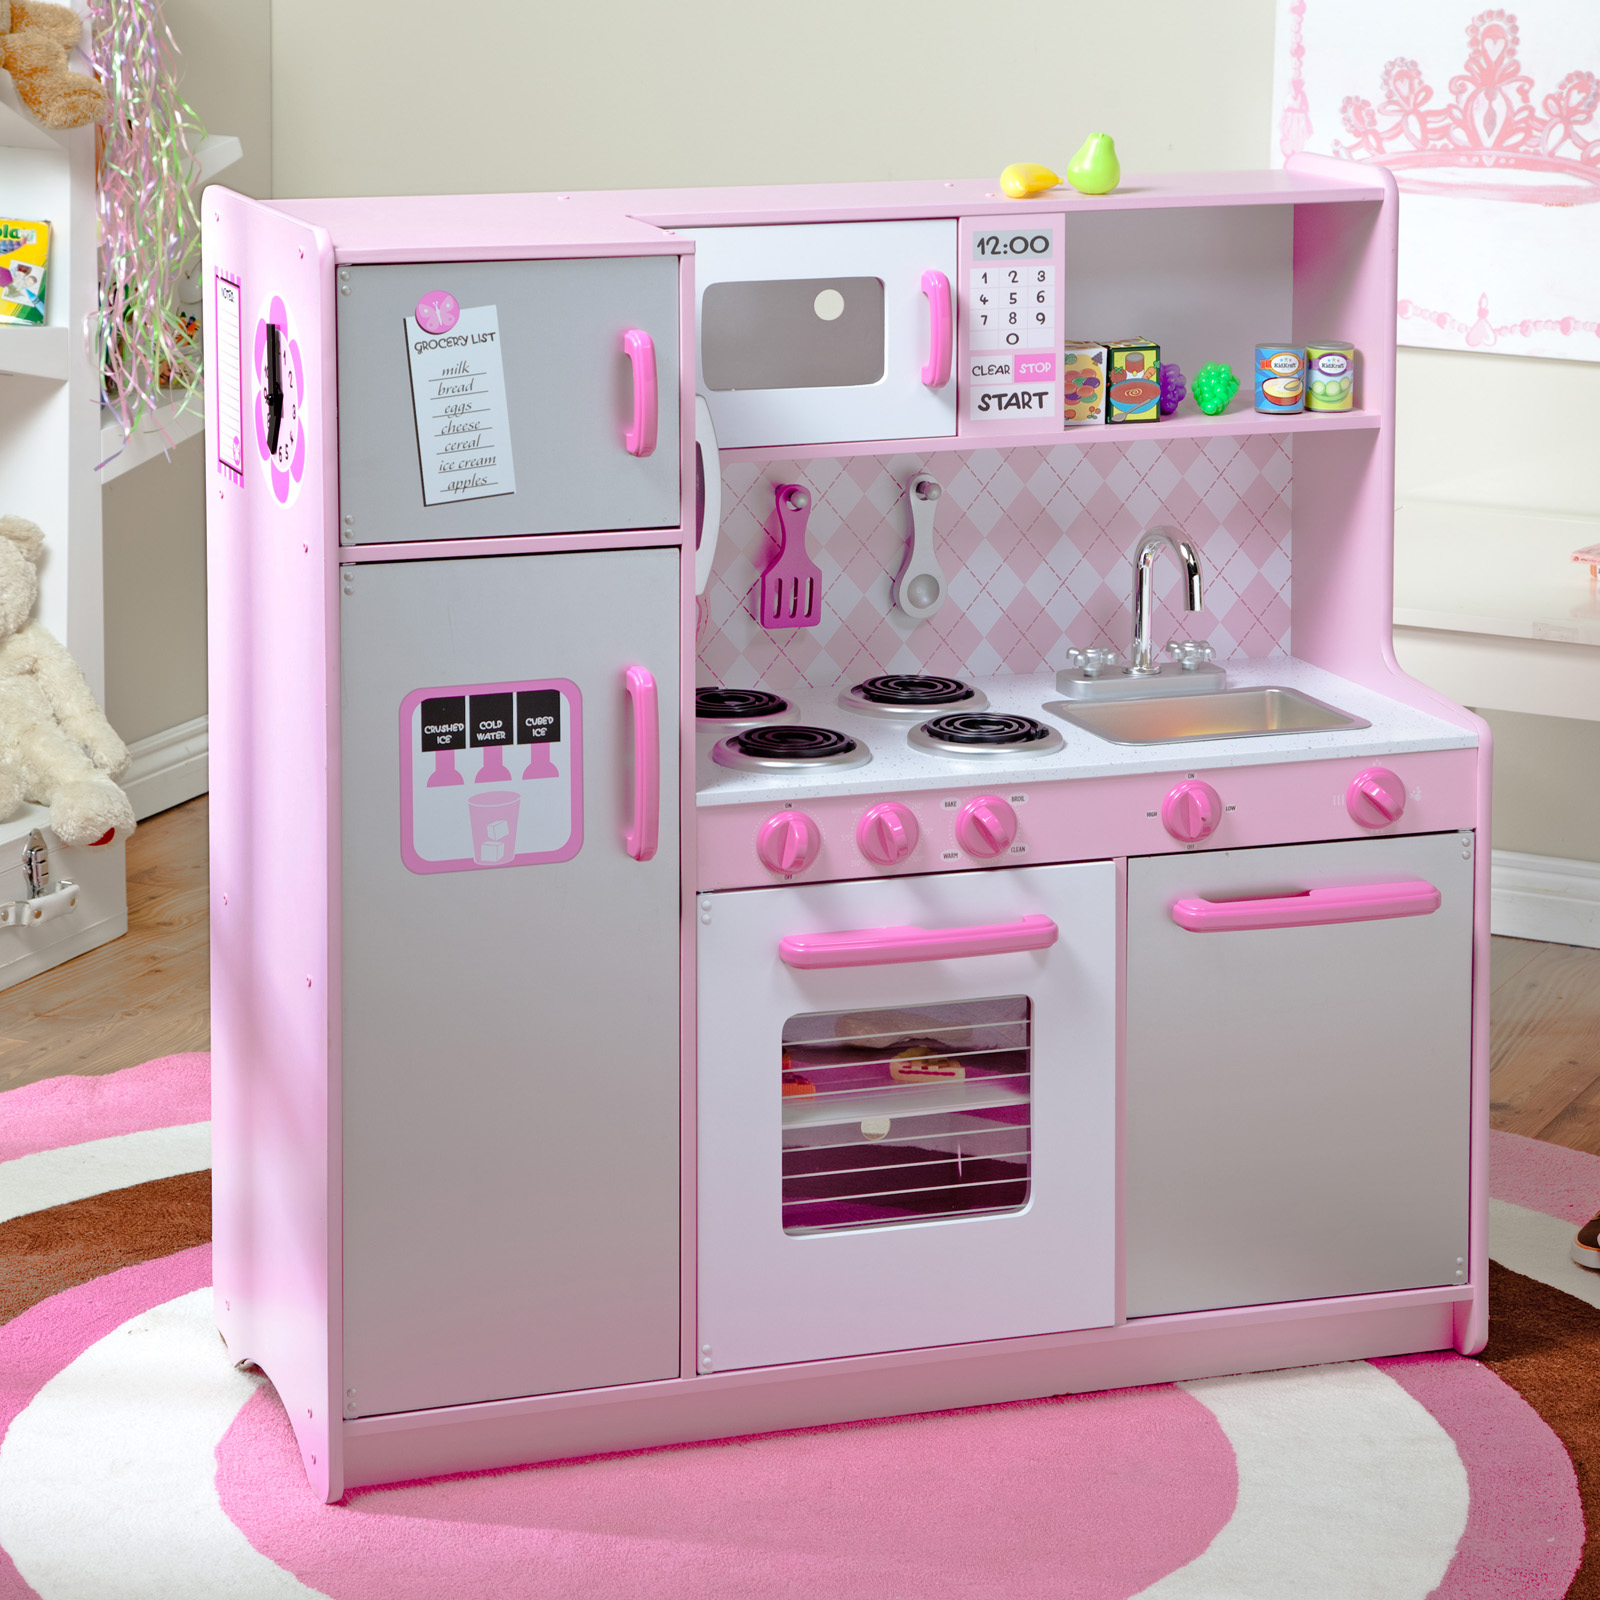 Play Kitchen Kidkraft Uptown Espresso Play Kitchen 53260 Play Kitchens At